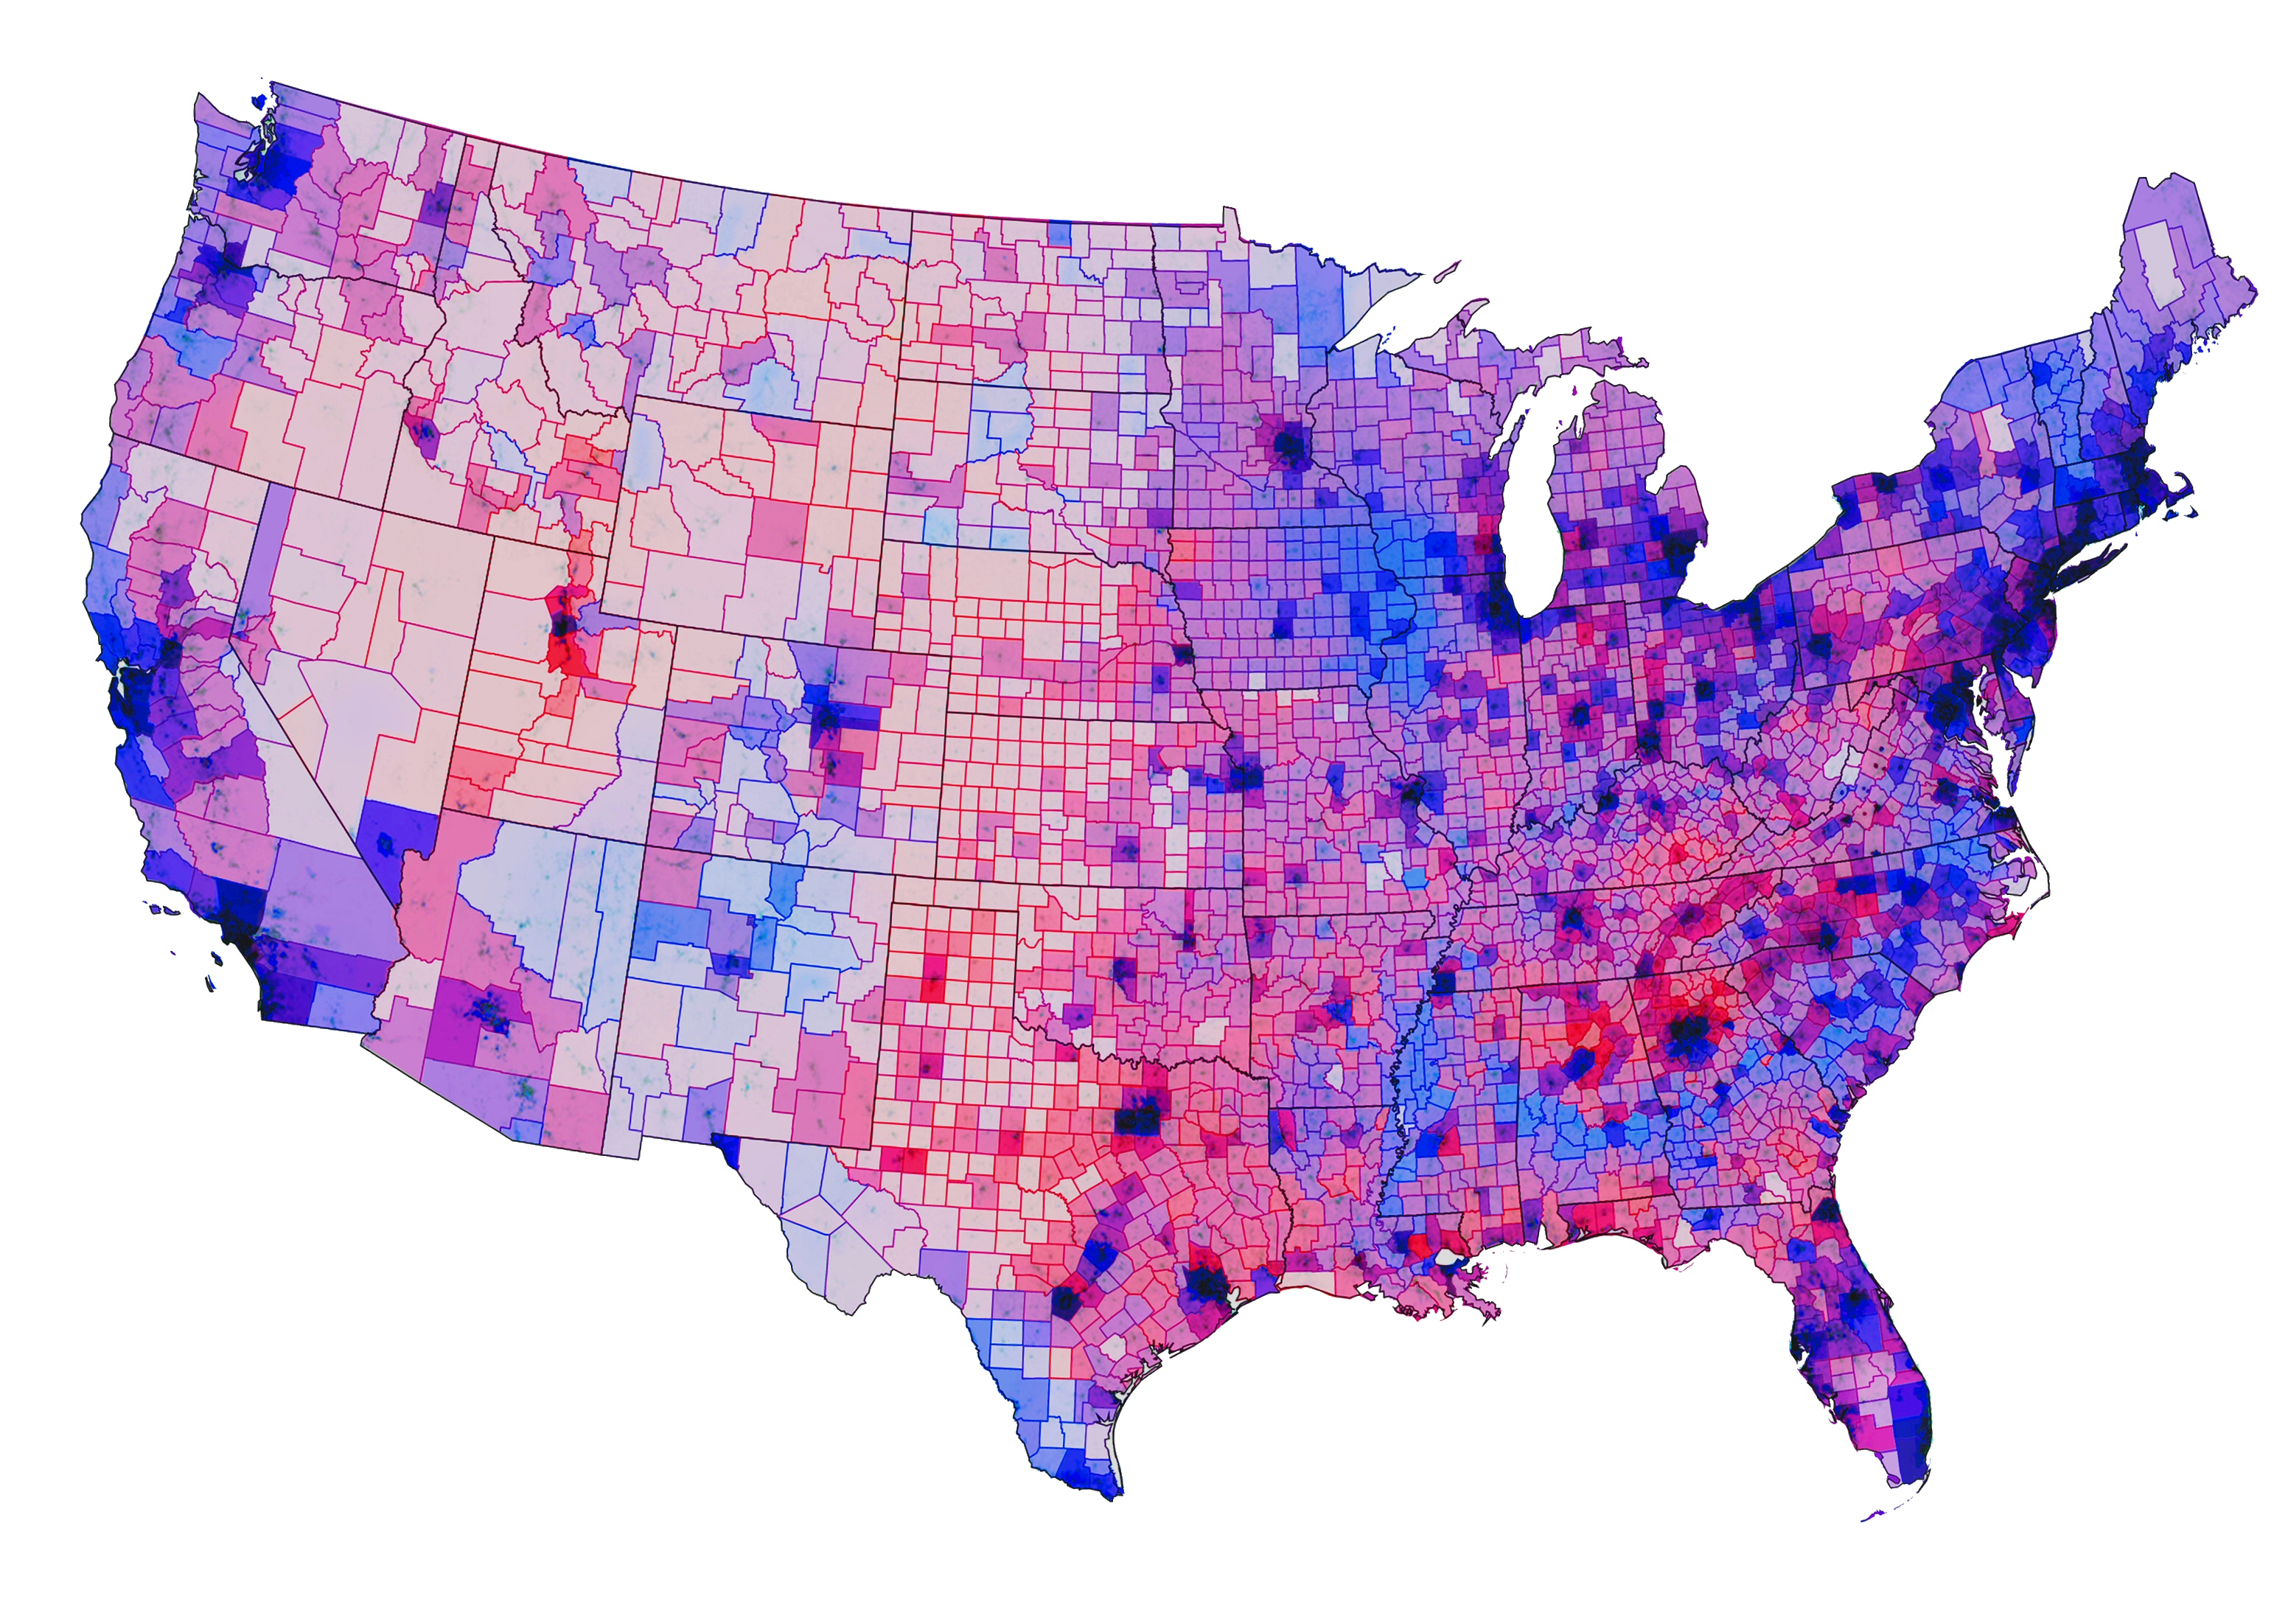 Mahir  Casualdata  Blending Of Colors Is The New Hot Topic In - Us map color